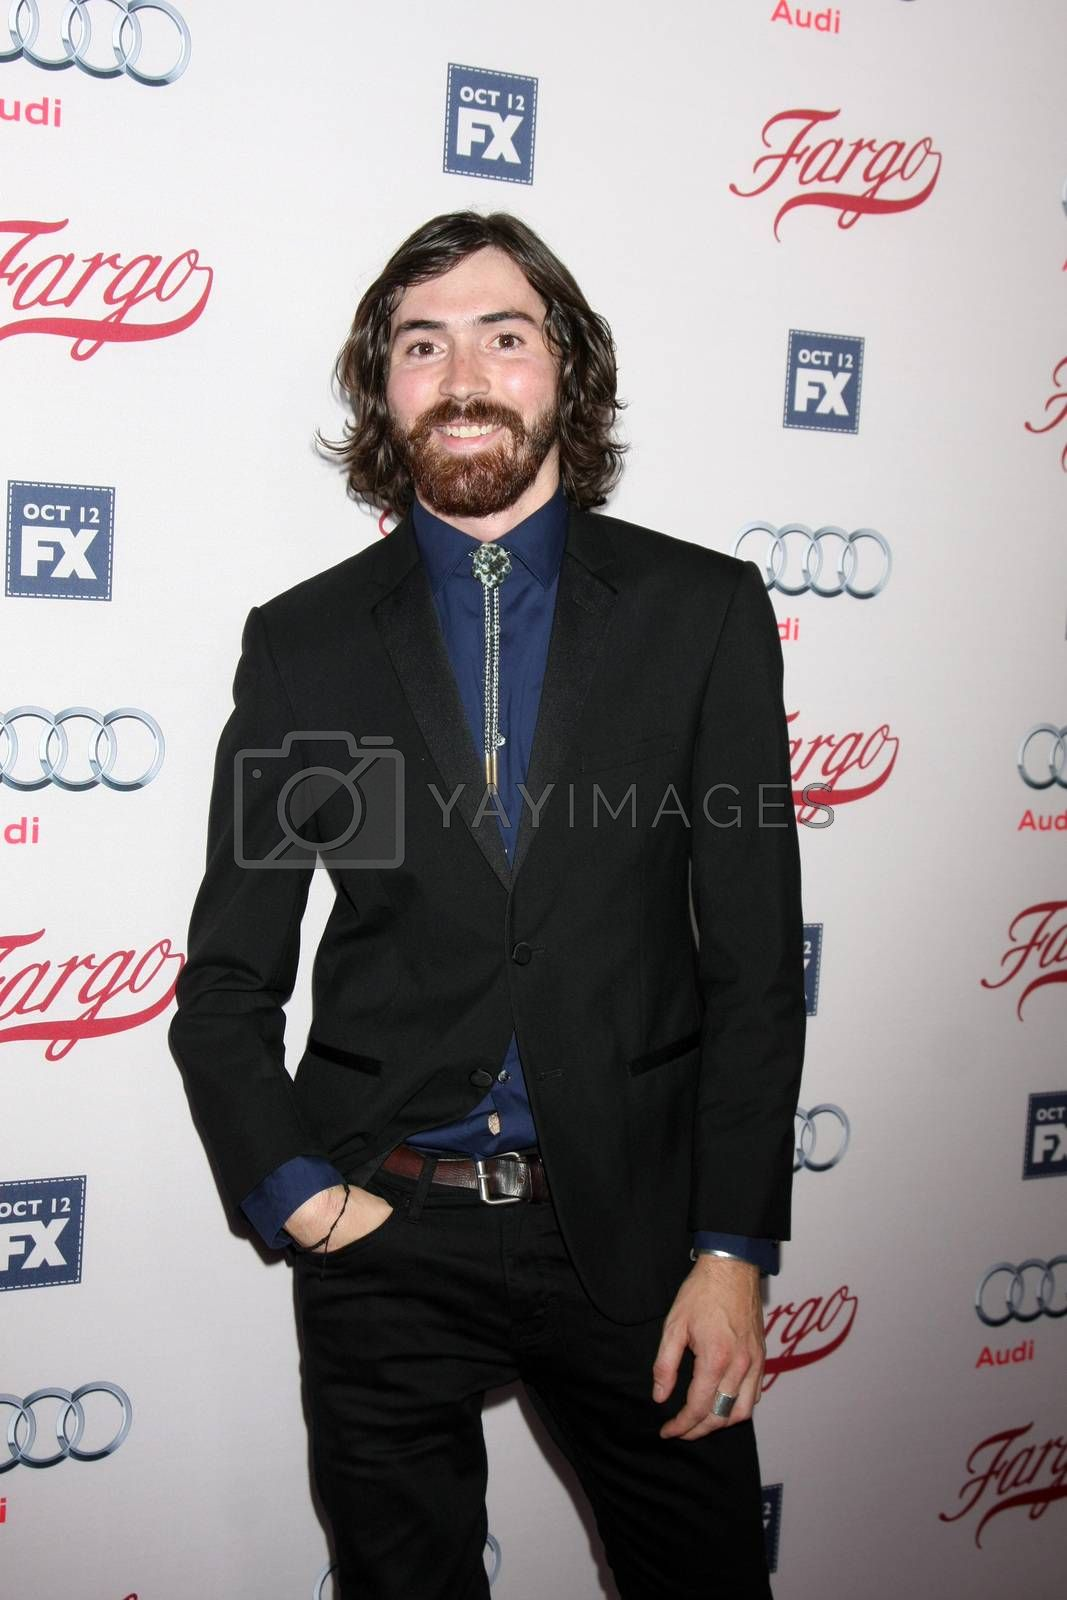 """Keir O'Donnell at the """"Fargo"""" Season 2 Premiere Screening, ArcLight, Hollywood, CA 10-07-15/ImageCollect by ImageCollect"""